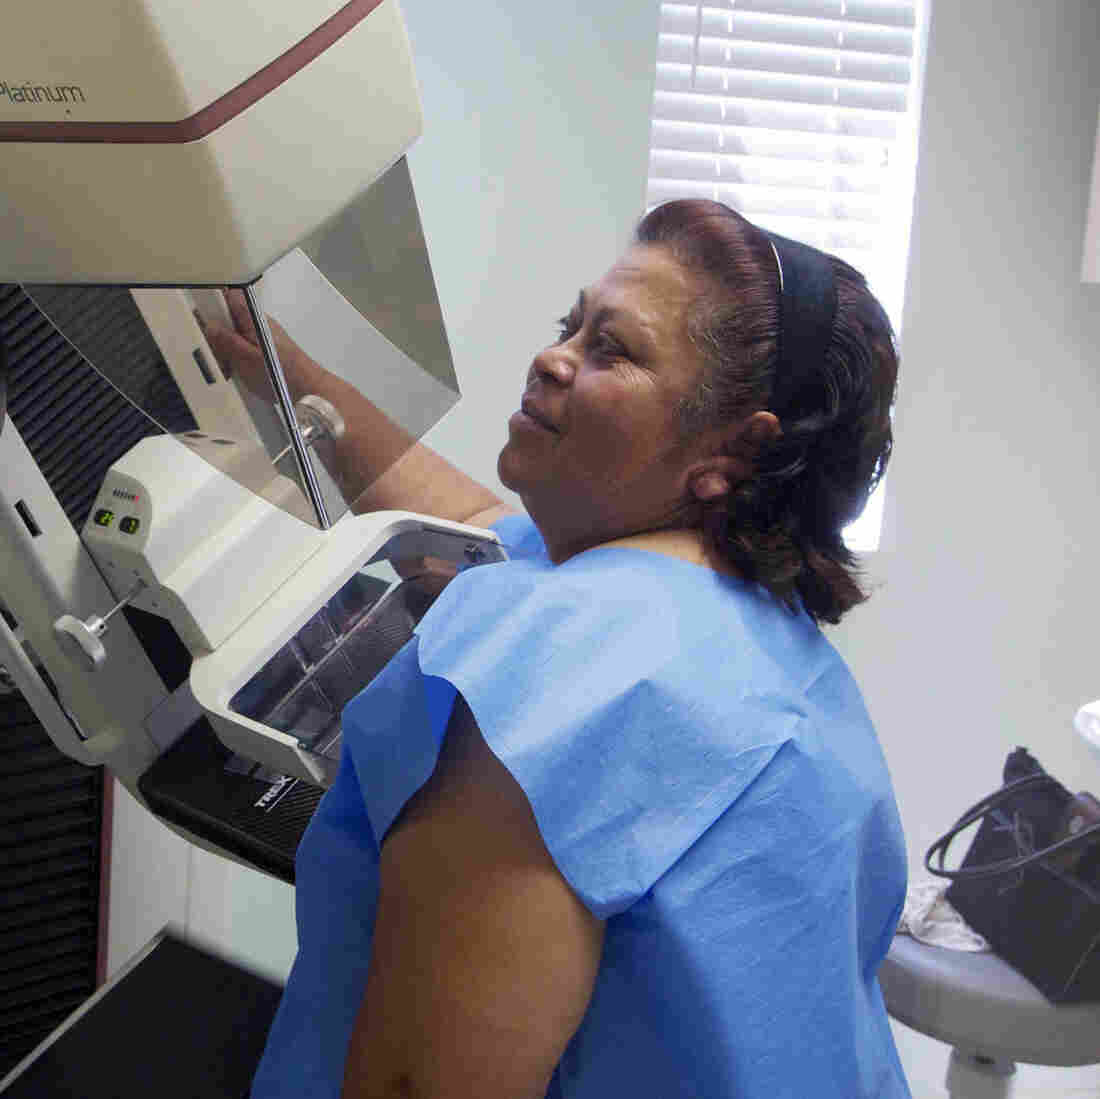 With Routine Mammograms, Some Breast Cancers May Be Overtreated